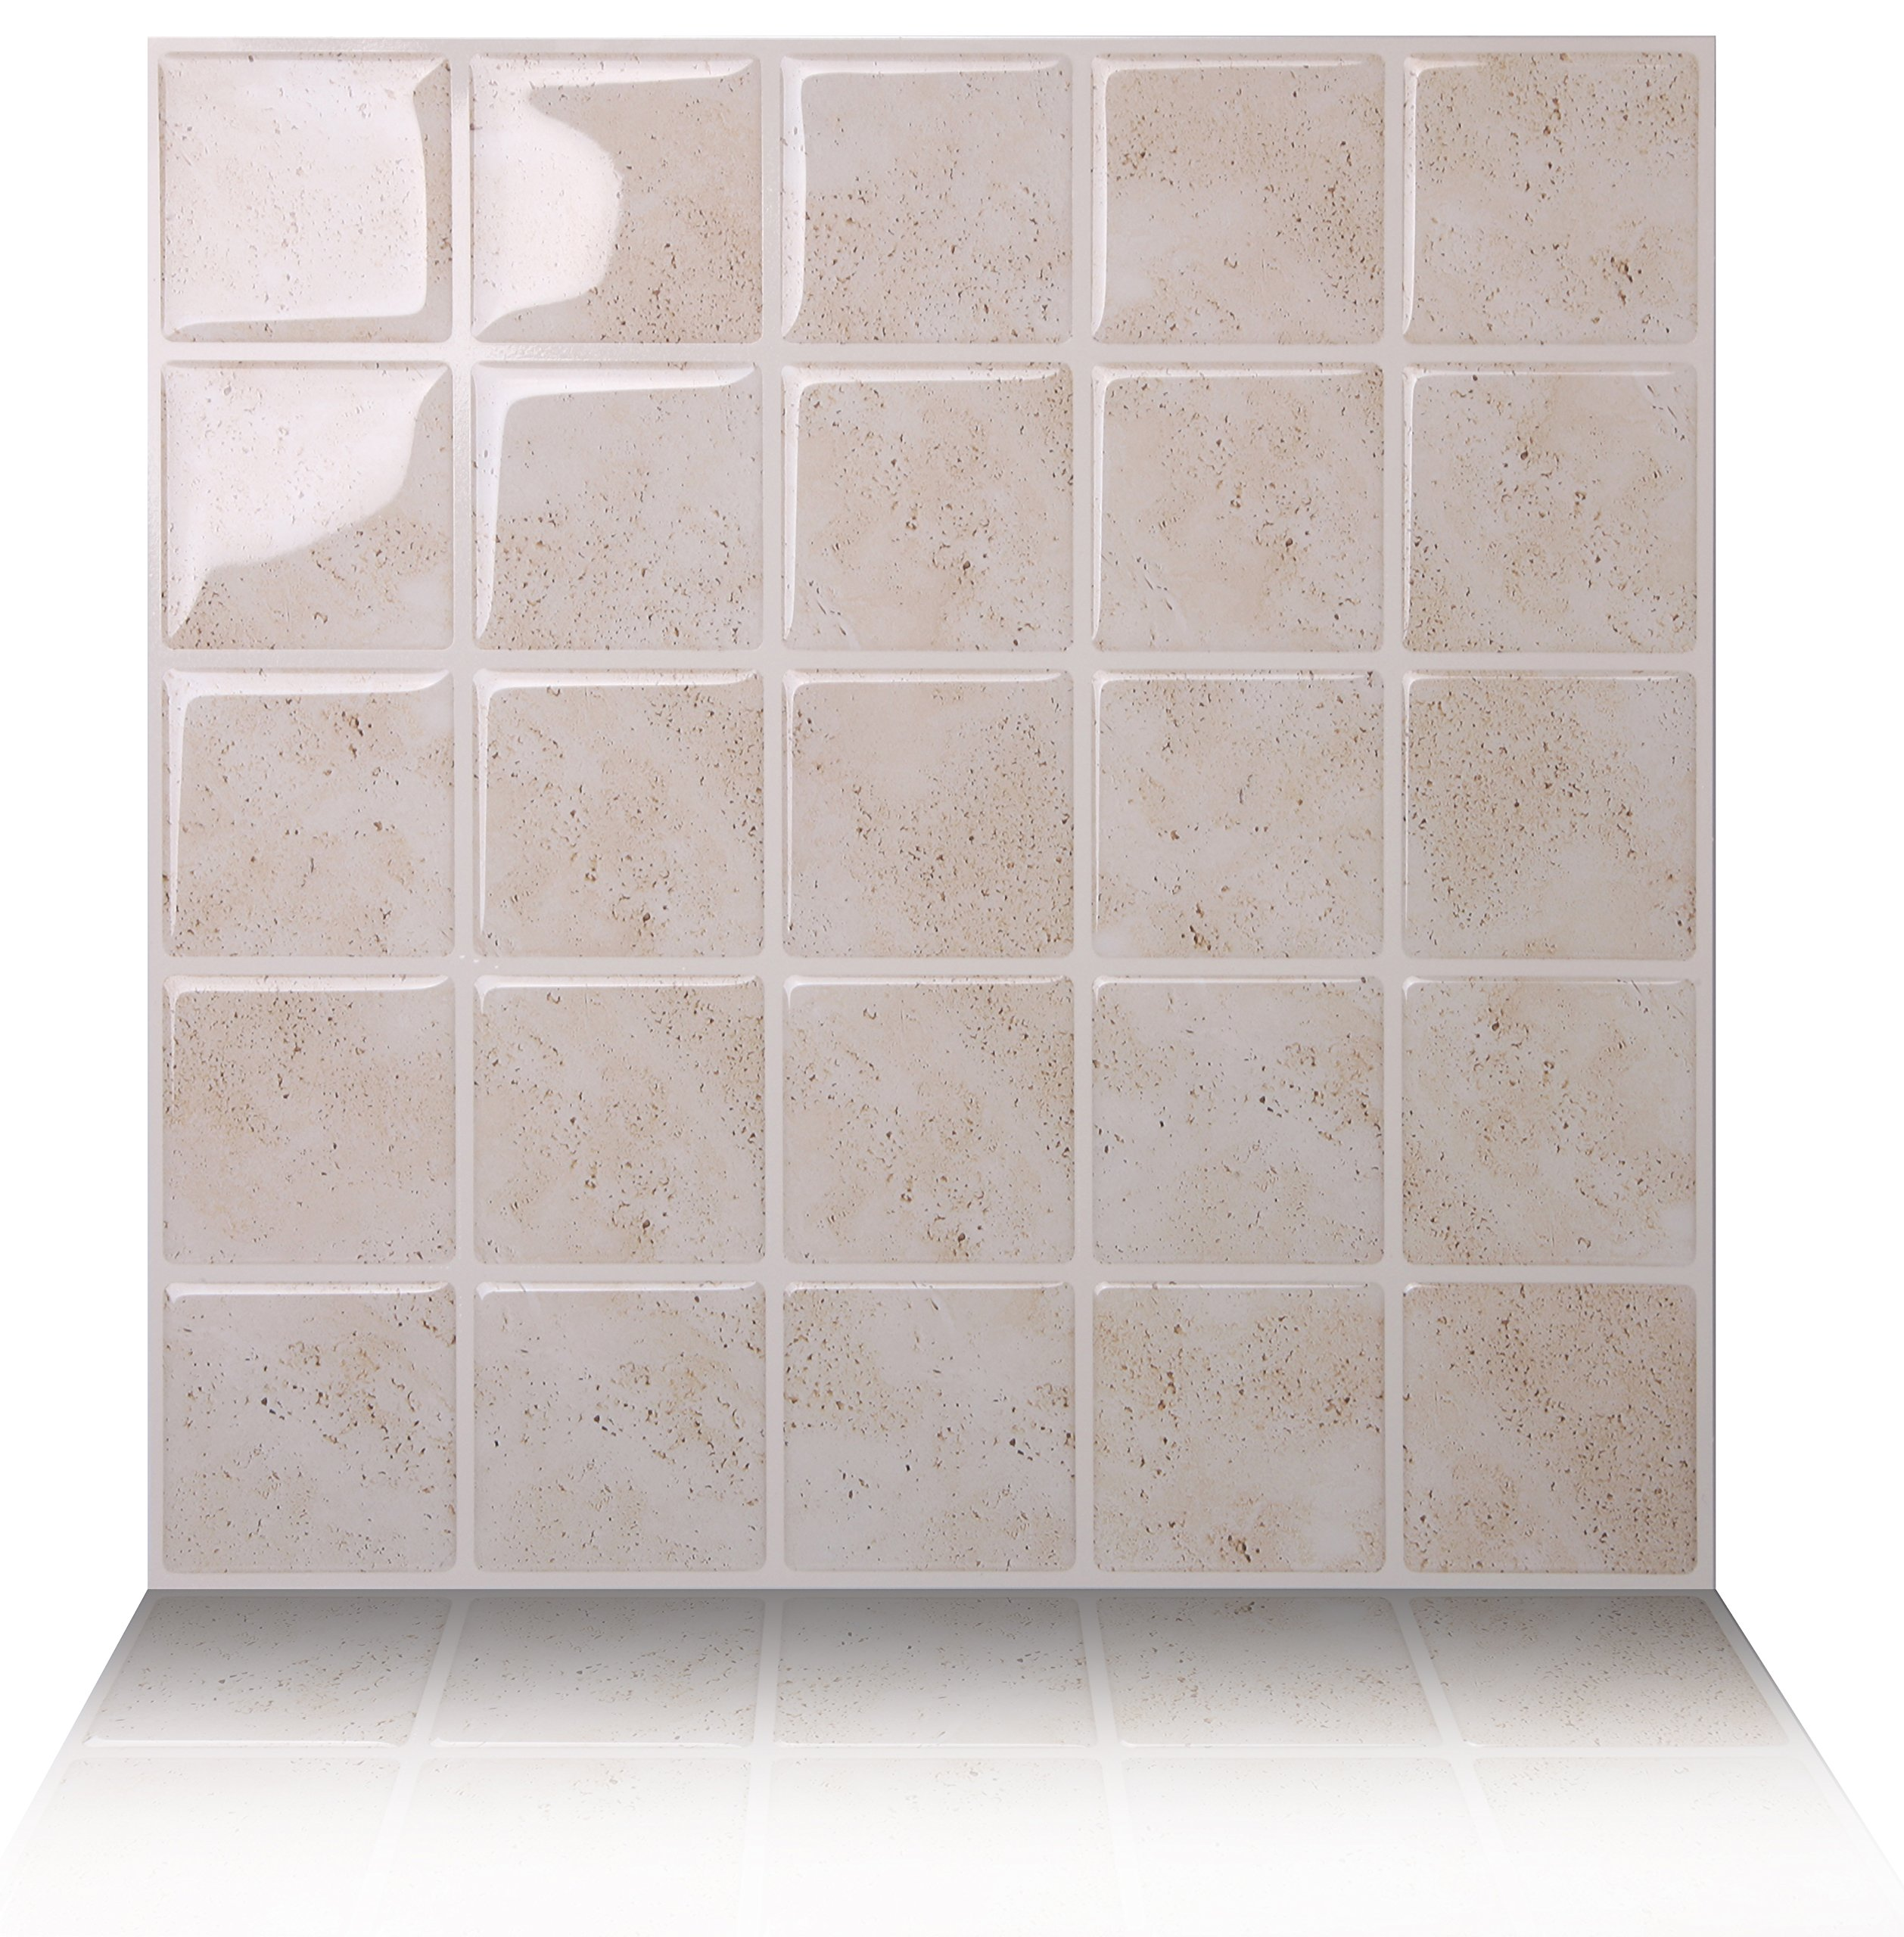 Tic Tac Tiles Anti-mold Peel and Stick Wall Tile in Marmo Travertine (10 Tiles) by Tic Tac Tiles